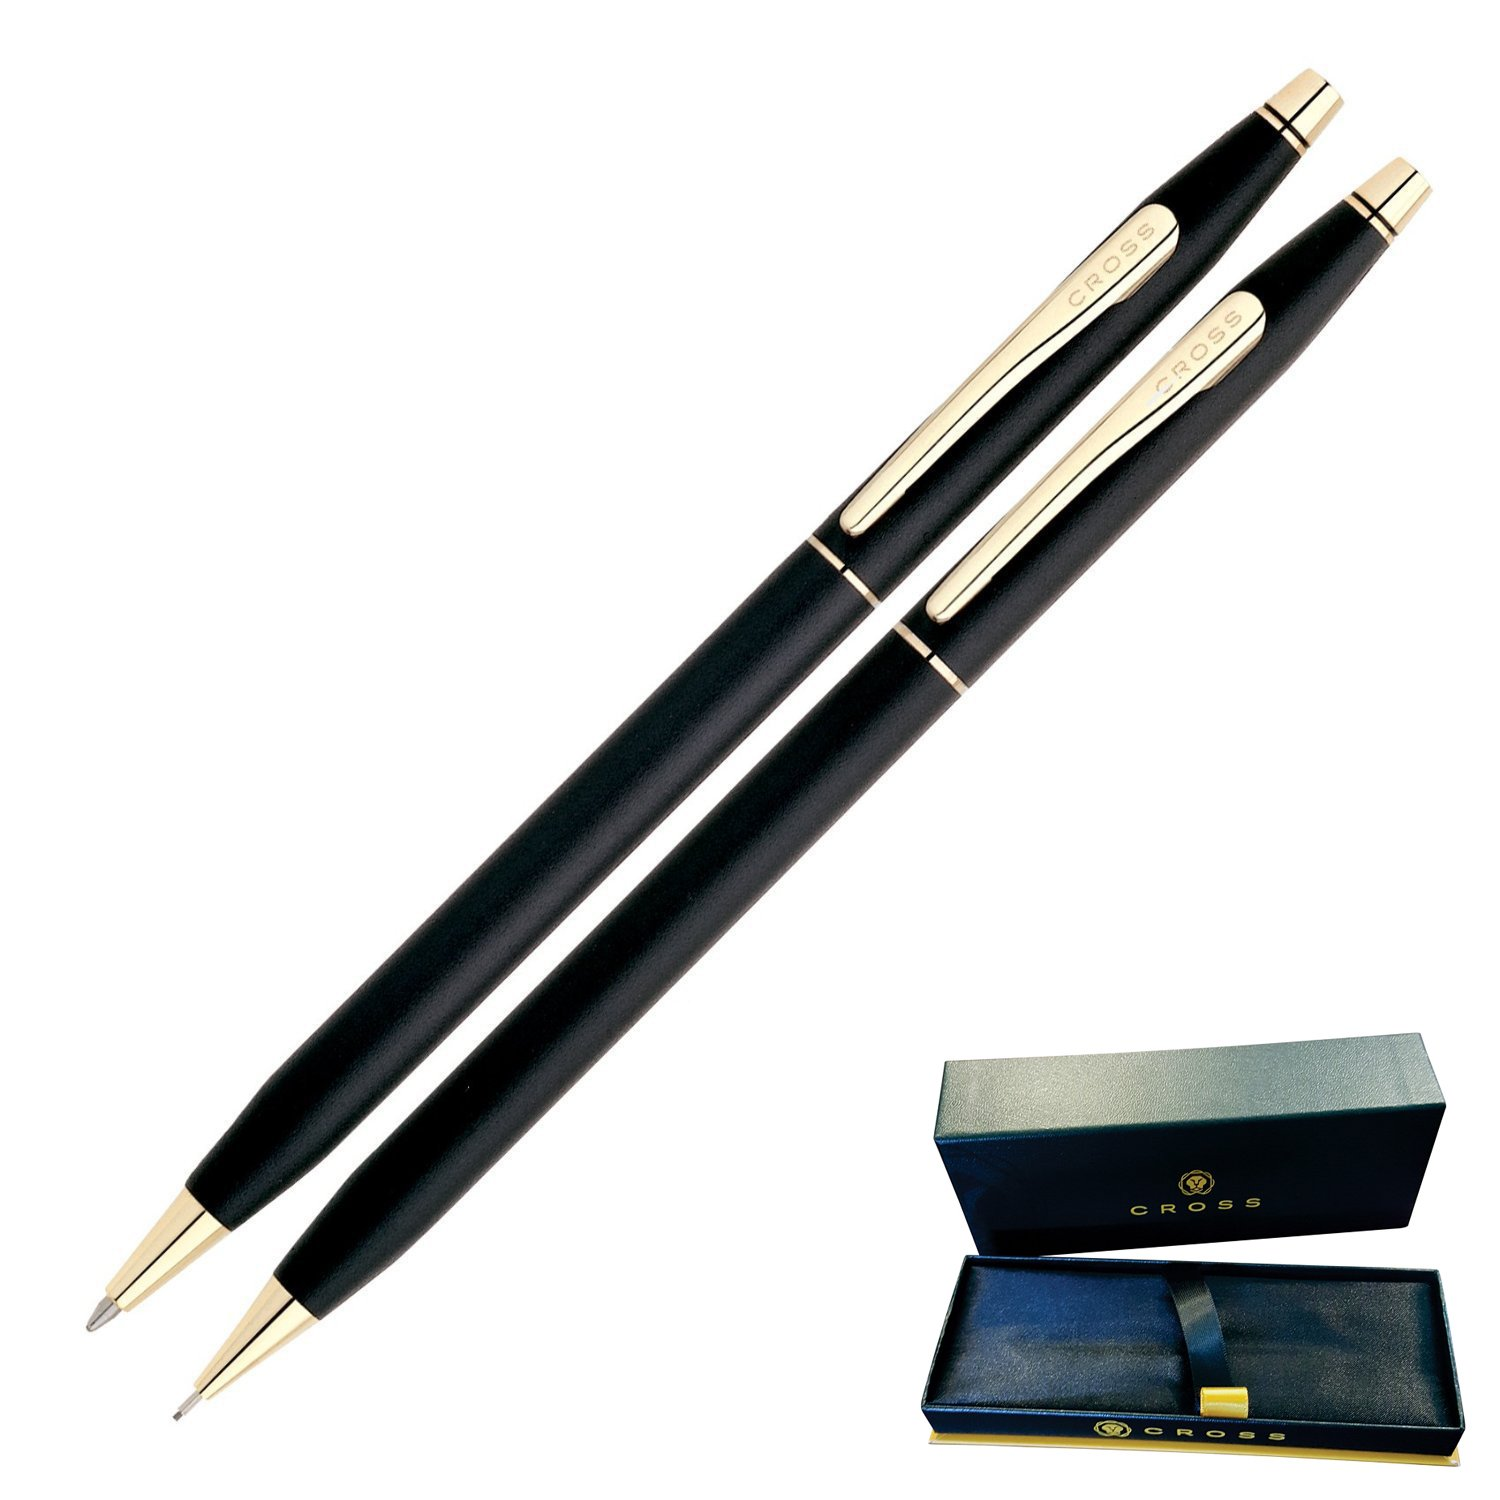 Dayspring Pens - Engraved / Personalized CROSS Classic Century Black Pen and Pencil Set, Gold Trim 250105. Custom Engraved Fast!